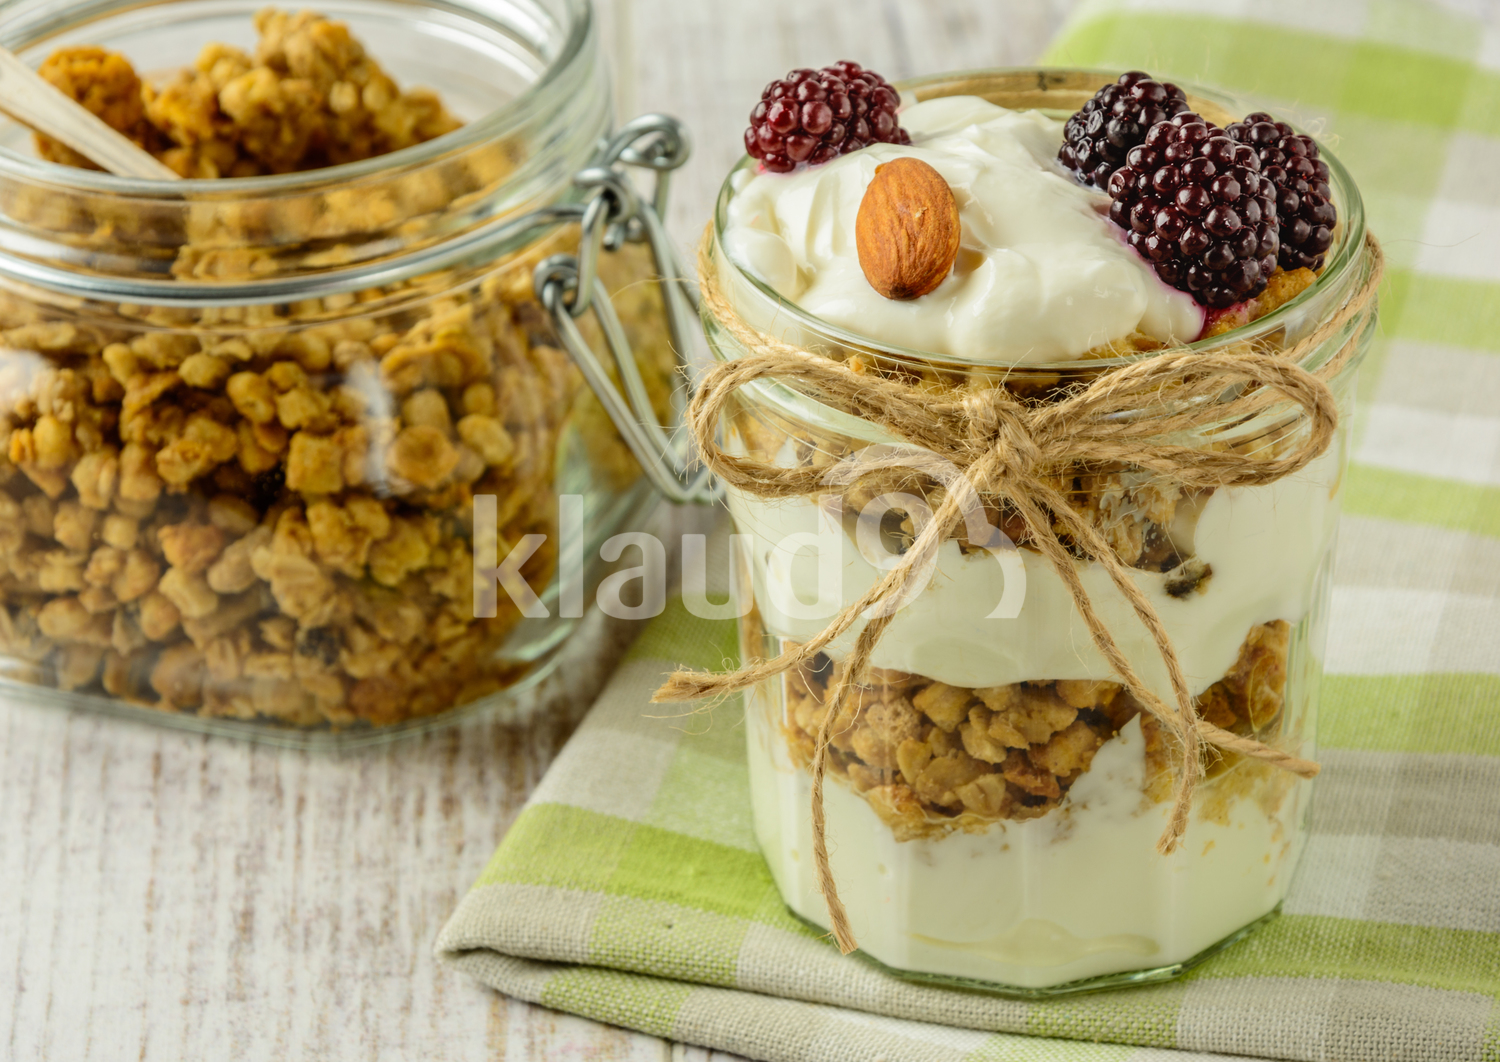 Healthy breakfast ingredients on a white wooden table.